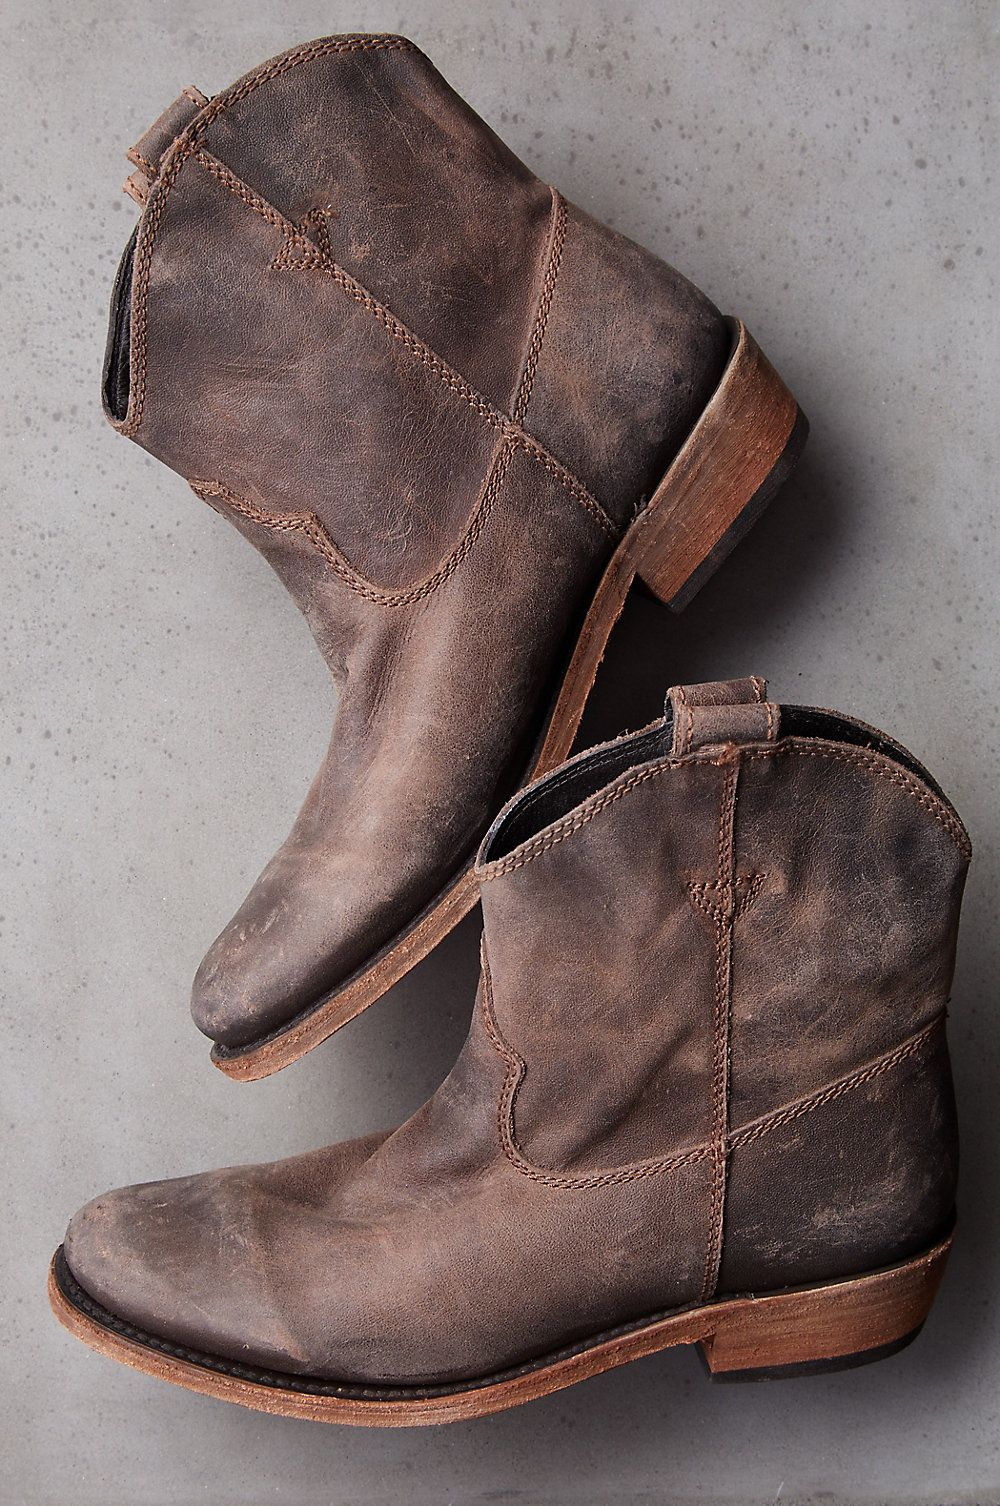 Boots, Ankle cowboy boots